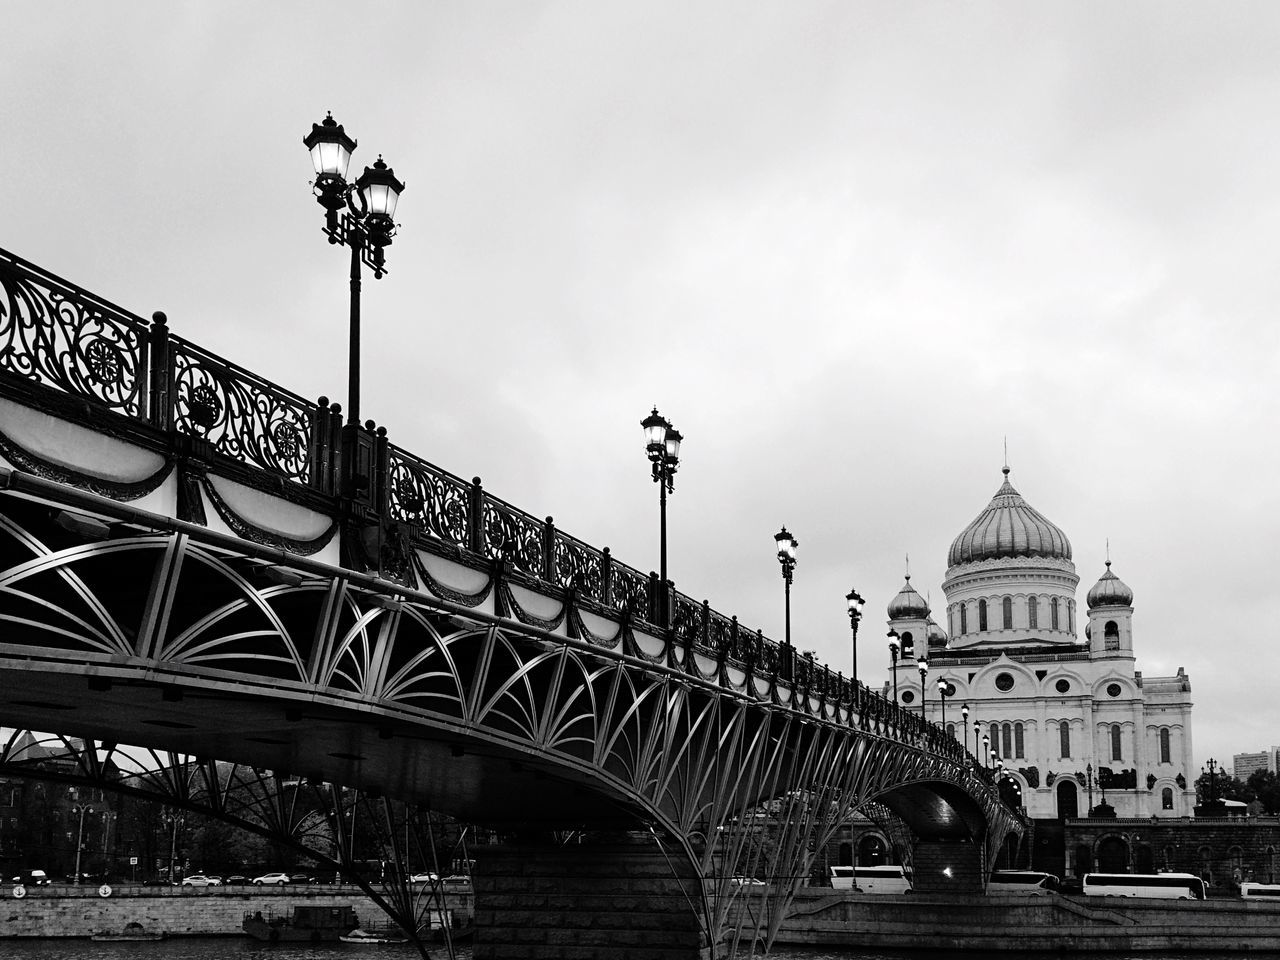 Monochrome Photography Cathedral Cathedral Of Christ The Savior Architecture Bridge Religious Architecture Overcast